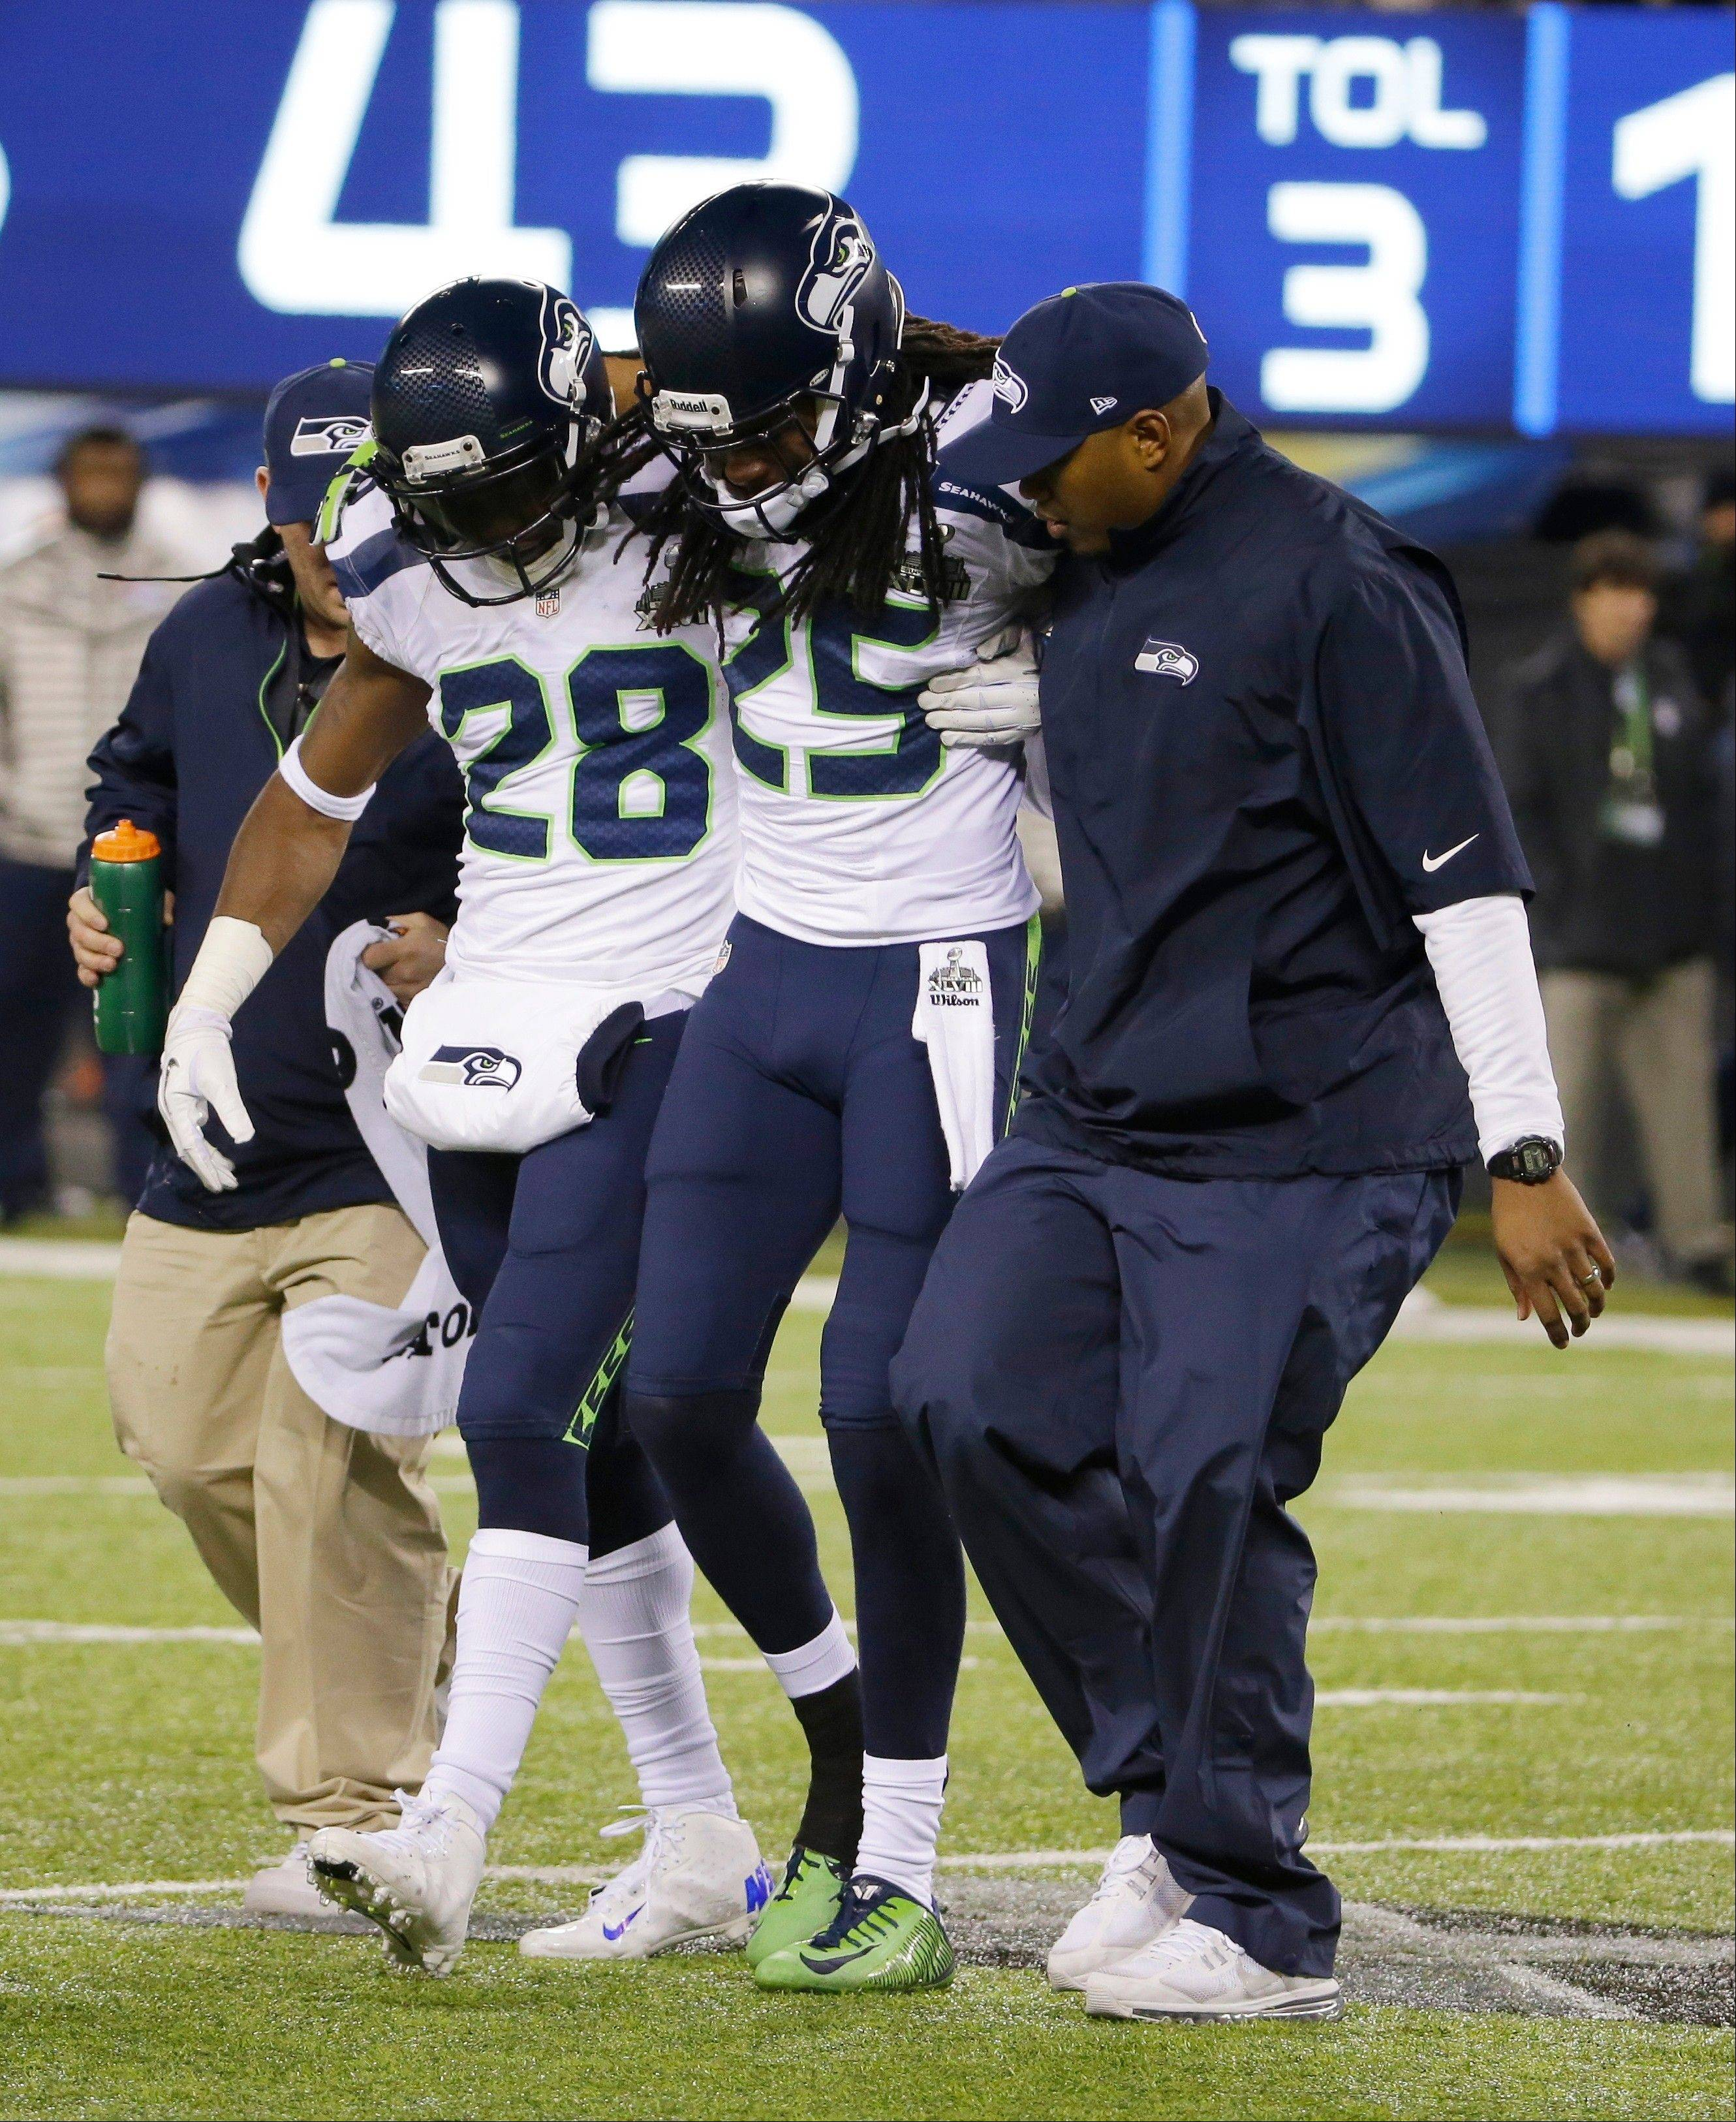 Seattle Seahawks' Richard Sherman (25) is helped off the field after getting injured during the second half.